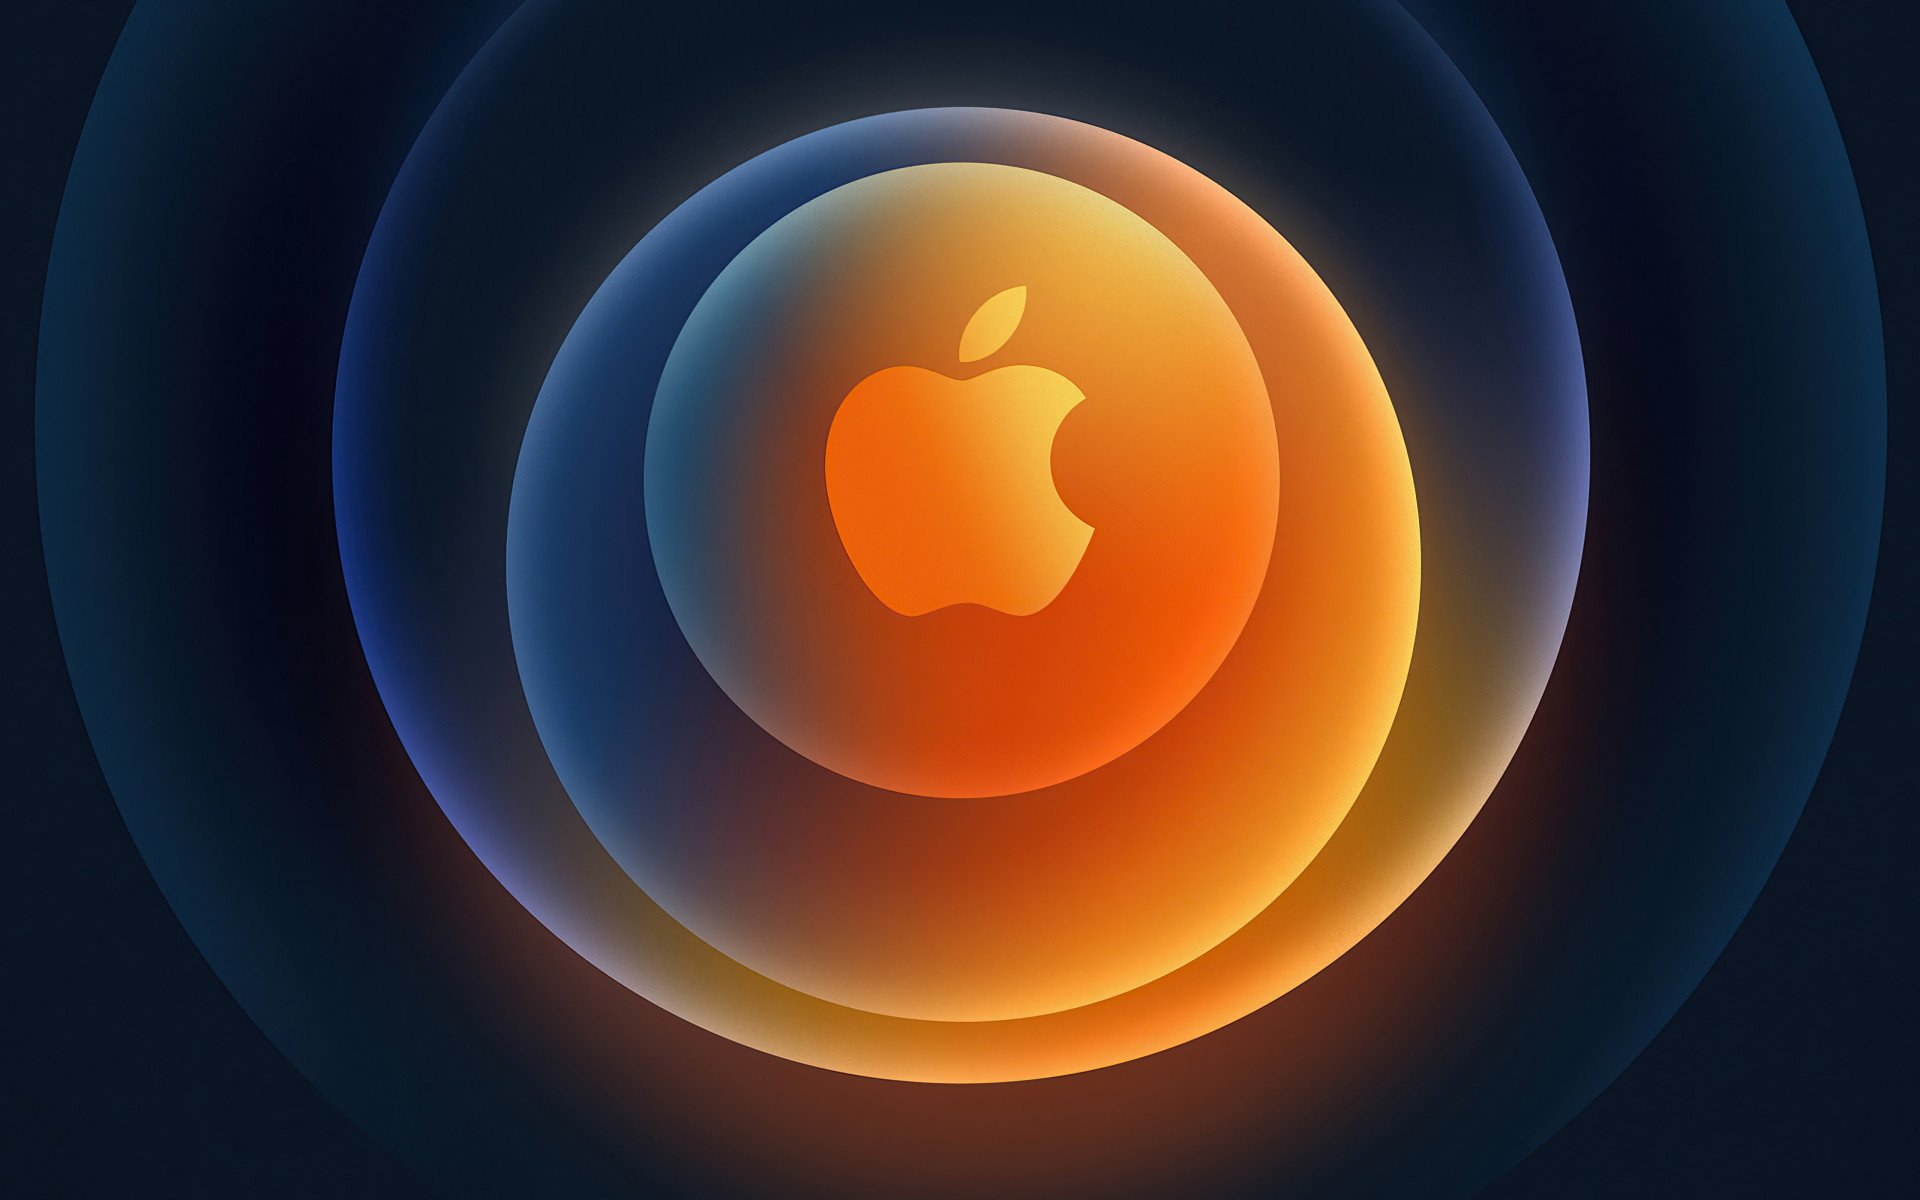 Apple Event wallpaper 1920x1200